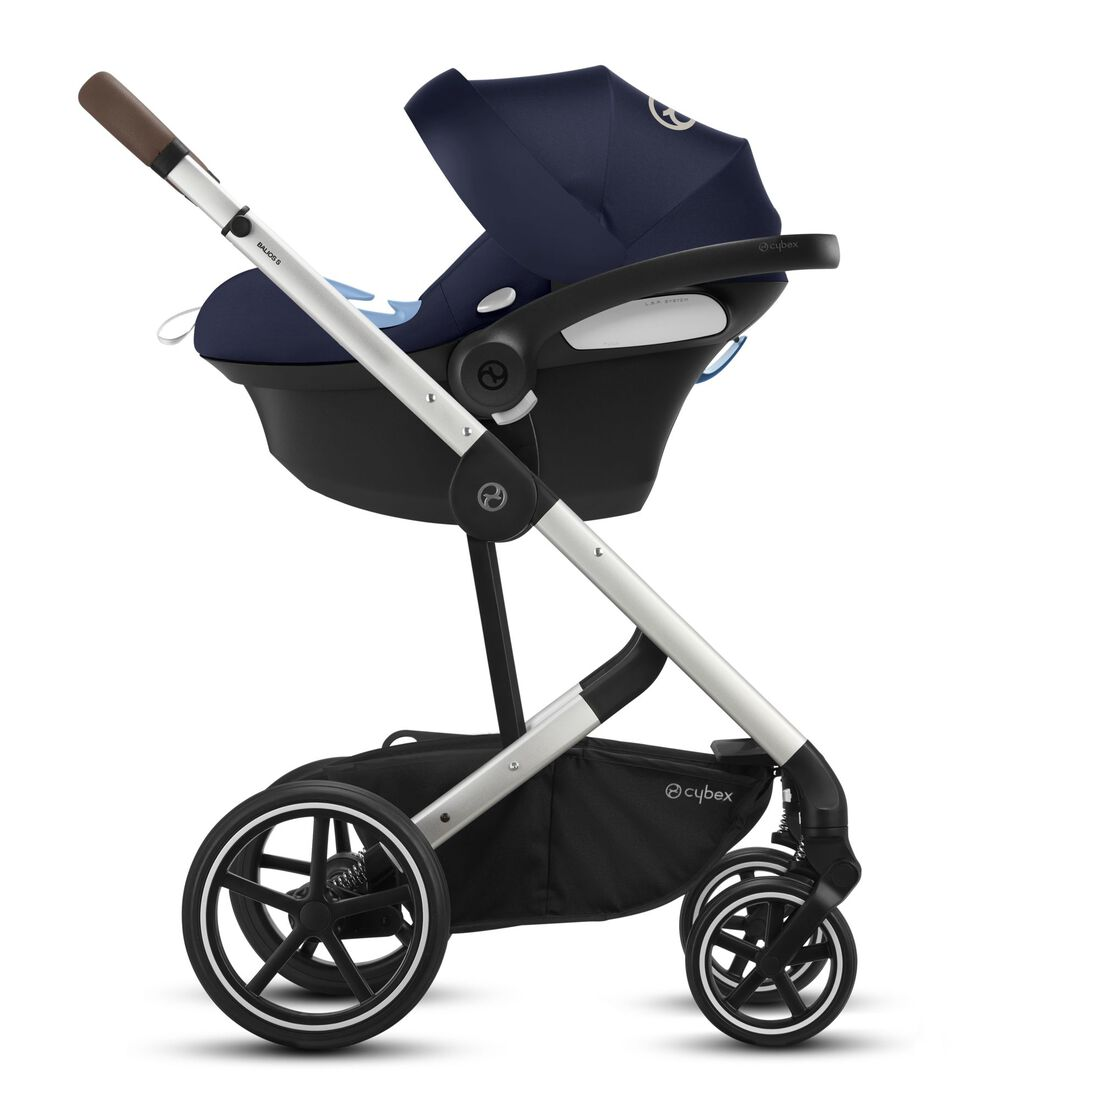 CYBEX Balios S Lux - Navy Blue (Silver Frame) in Navy Blue (Silver Frame) large image number 3